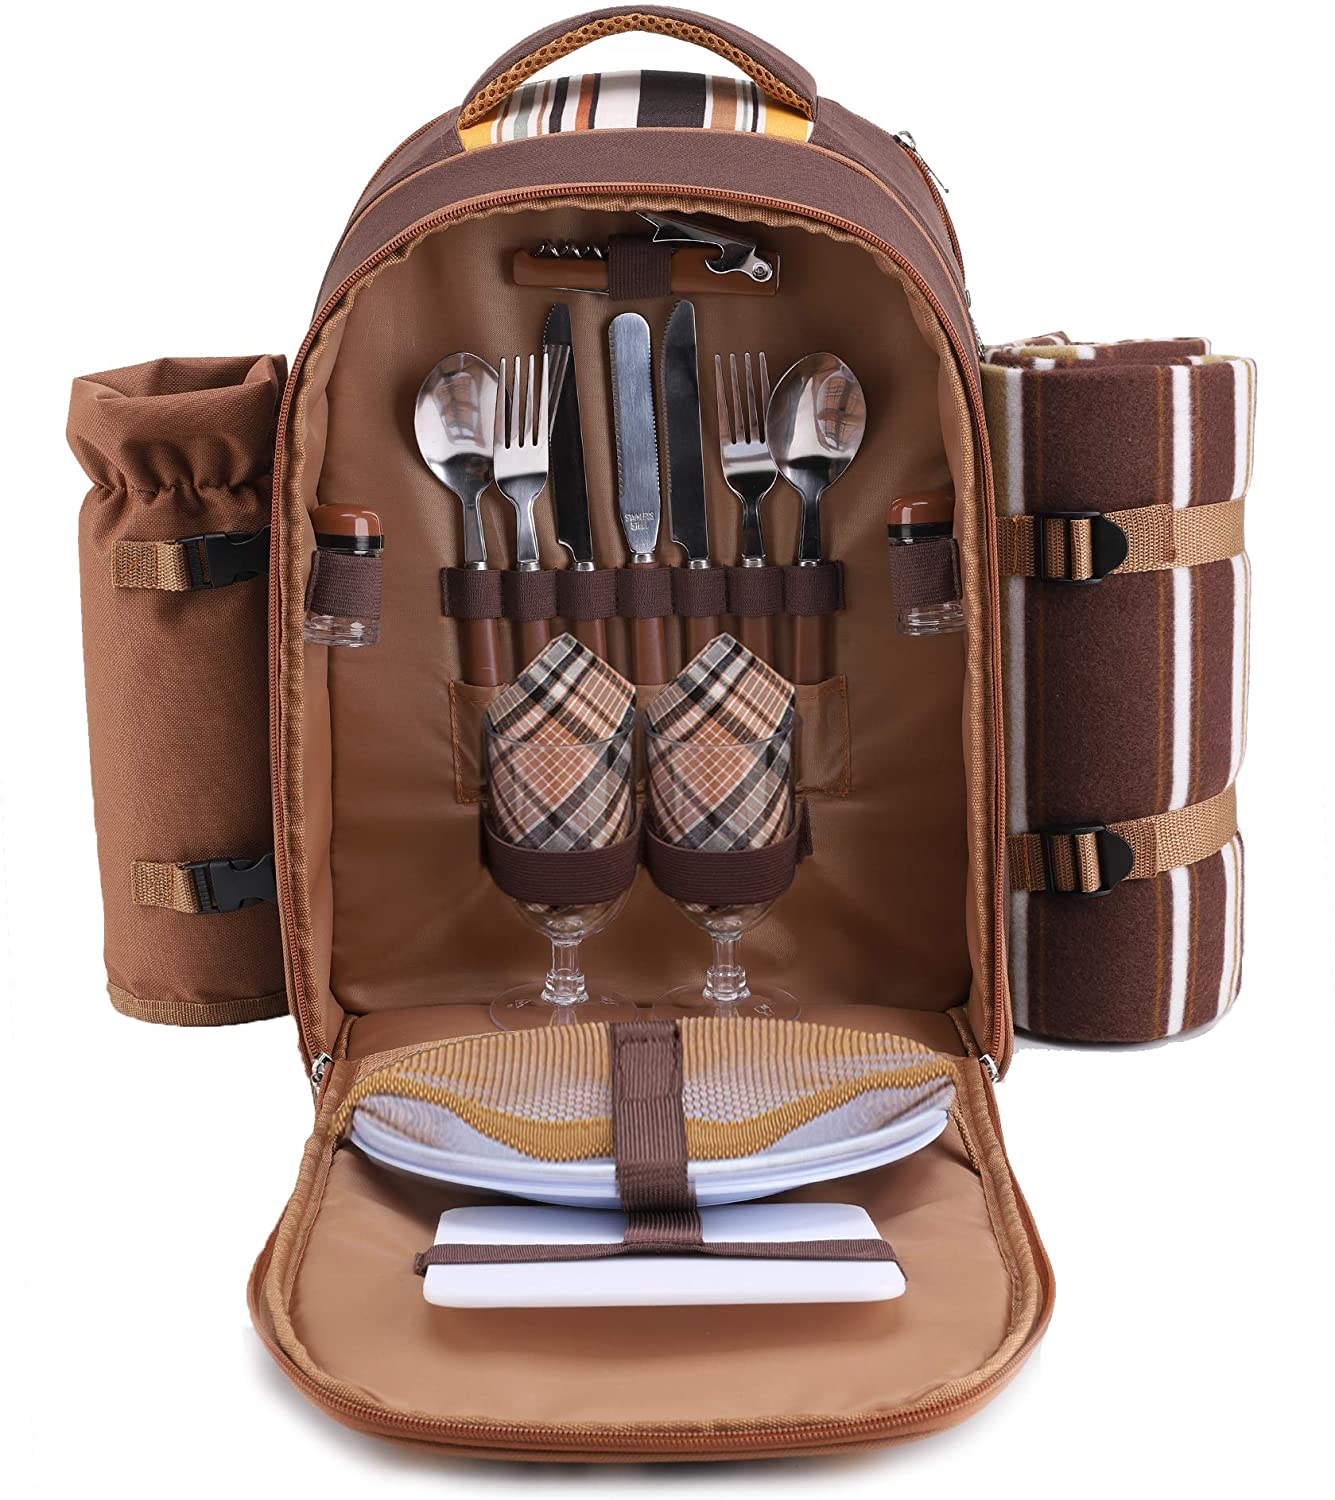 apollo walker Picnic Backpack Bag for 2 Person with Cooler Compartment, Detachable Bottle/Wine Holder, Fleece Blanket, Plates and Cutlery(2 Person, Brown)